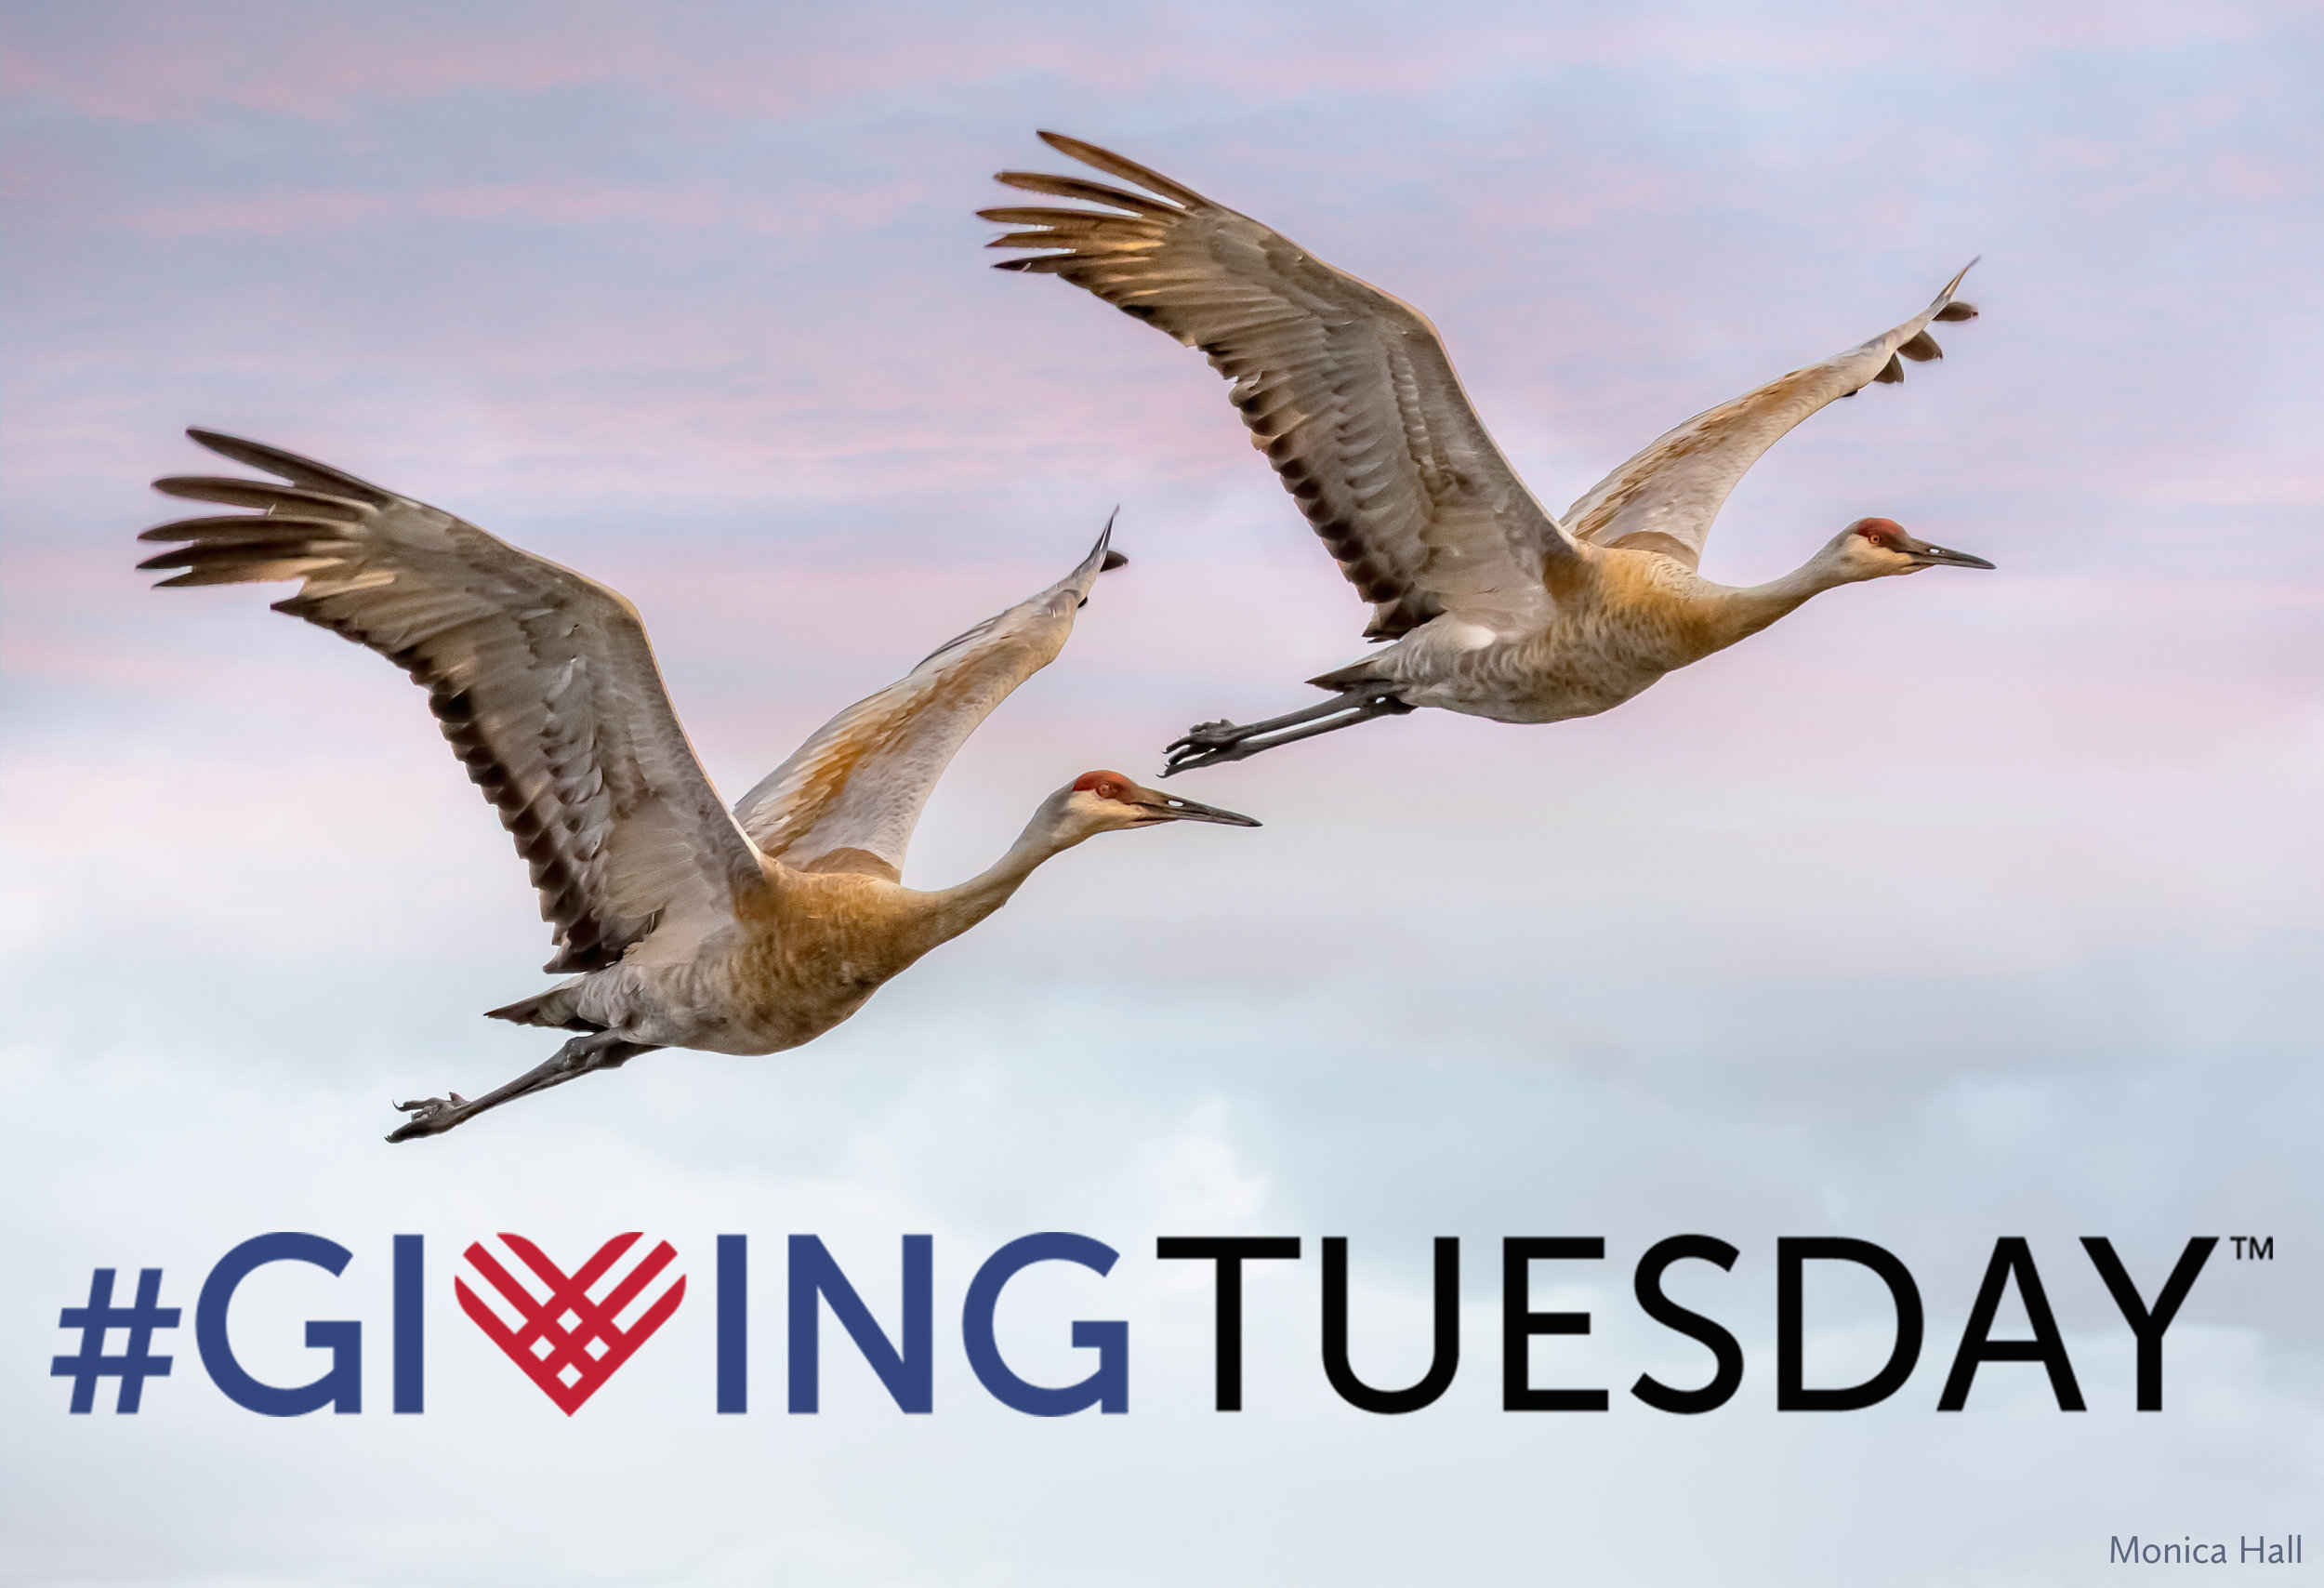 Sandhill cranes are in a hurry to join in on #GivingTuesday! Photo by Monica Hall